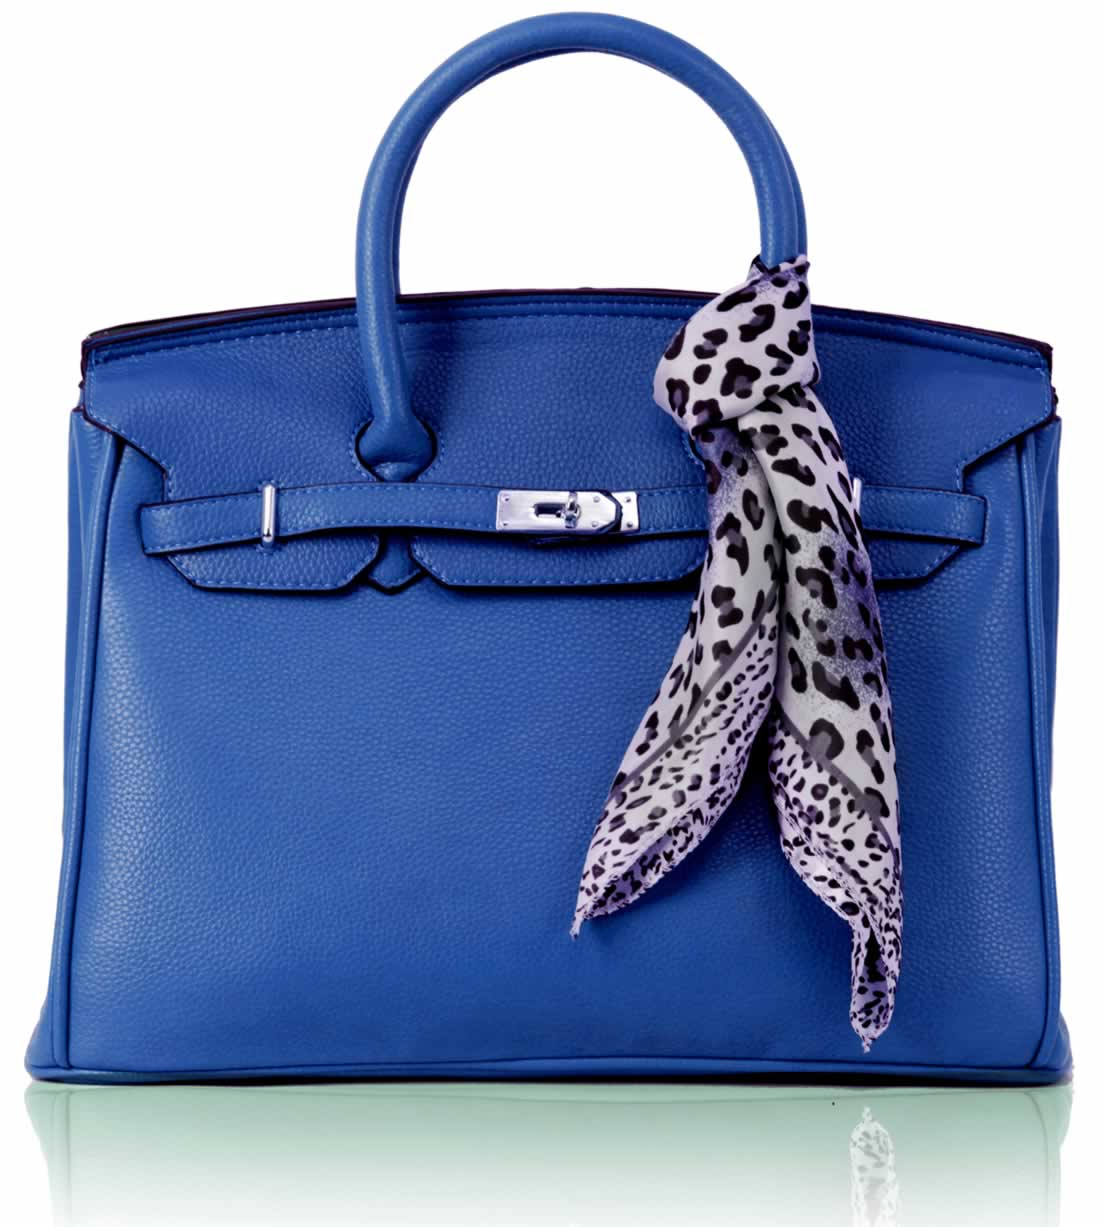 Kabelka LS0065 - Luxury Blue Tote Bag With Scarf